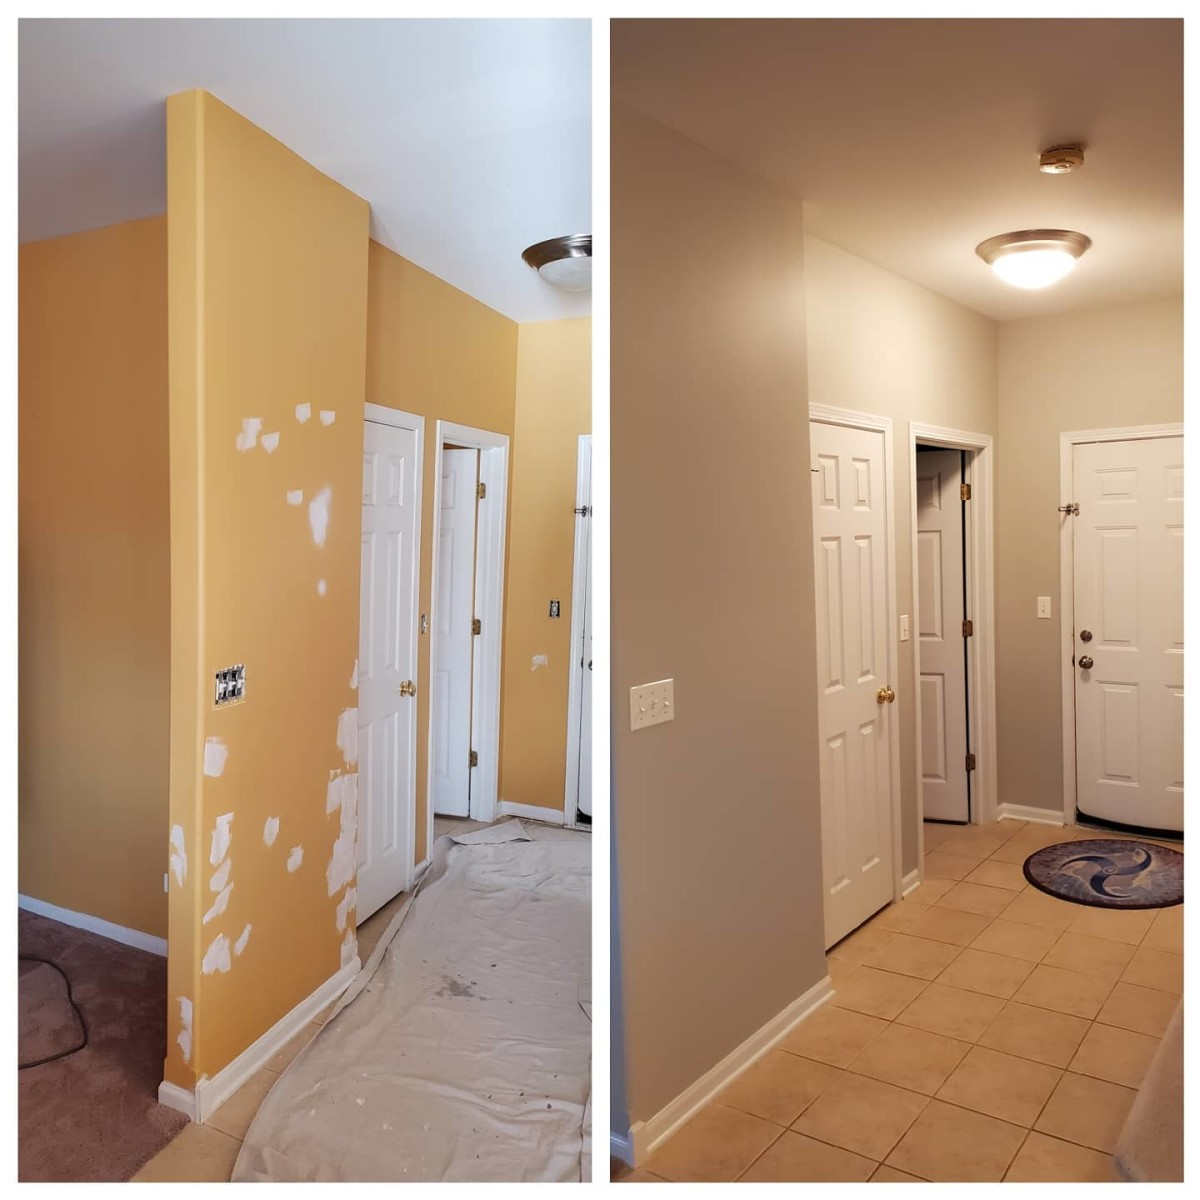 A hallway I prepped and painted.